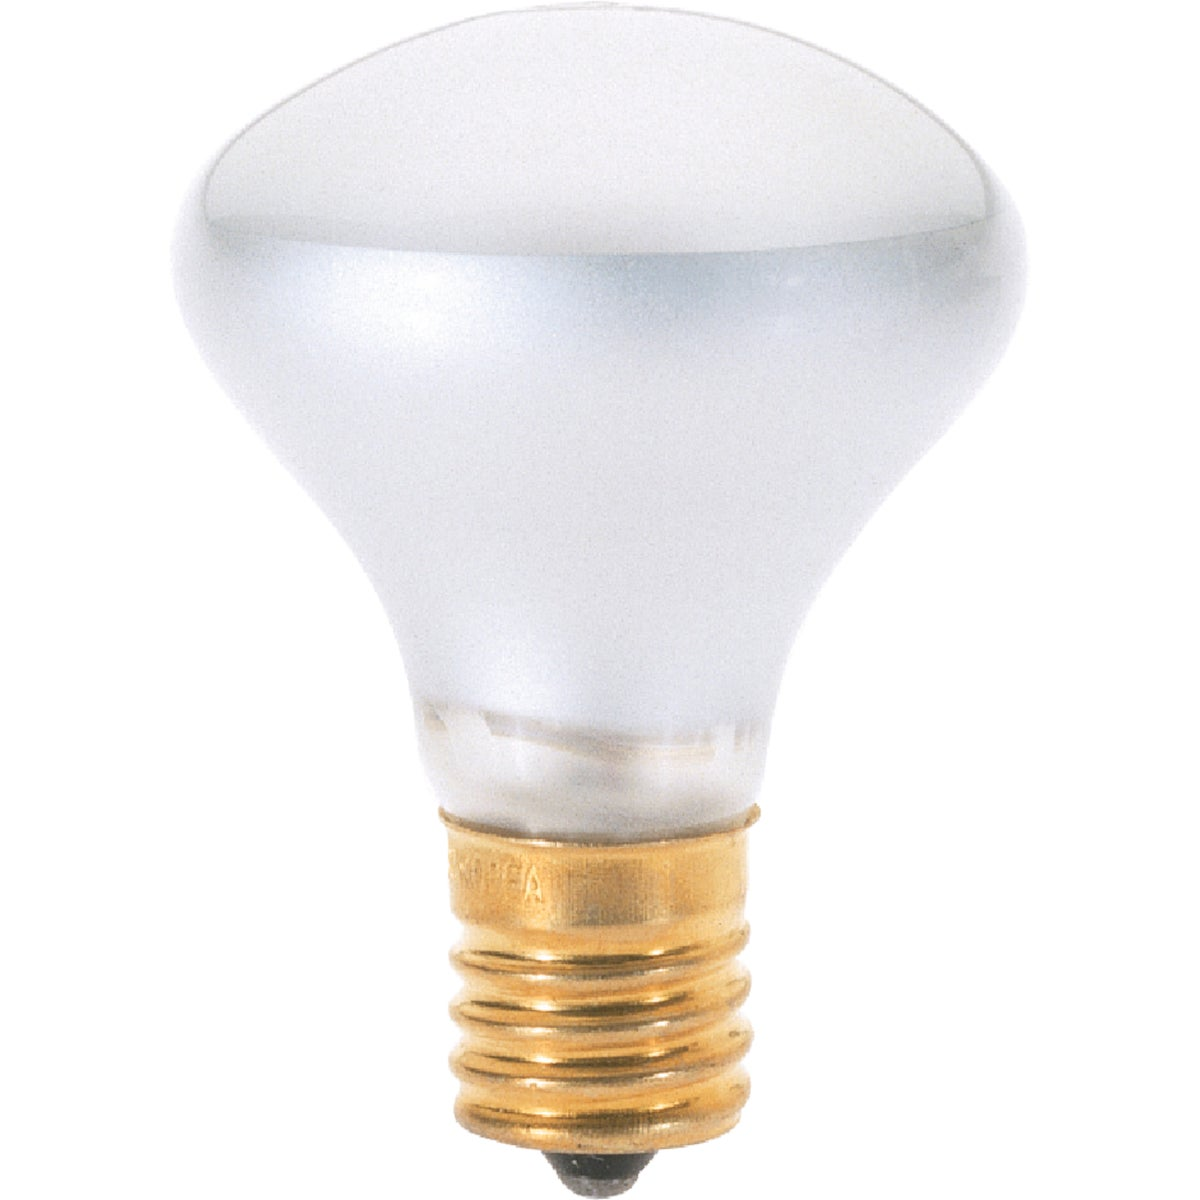 25W INT REFLECTOR BULB - 03648 by Westinghouse Lightng